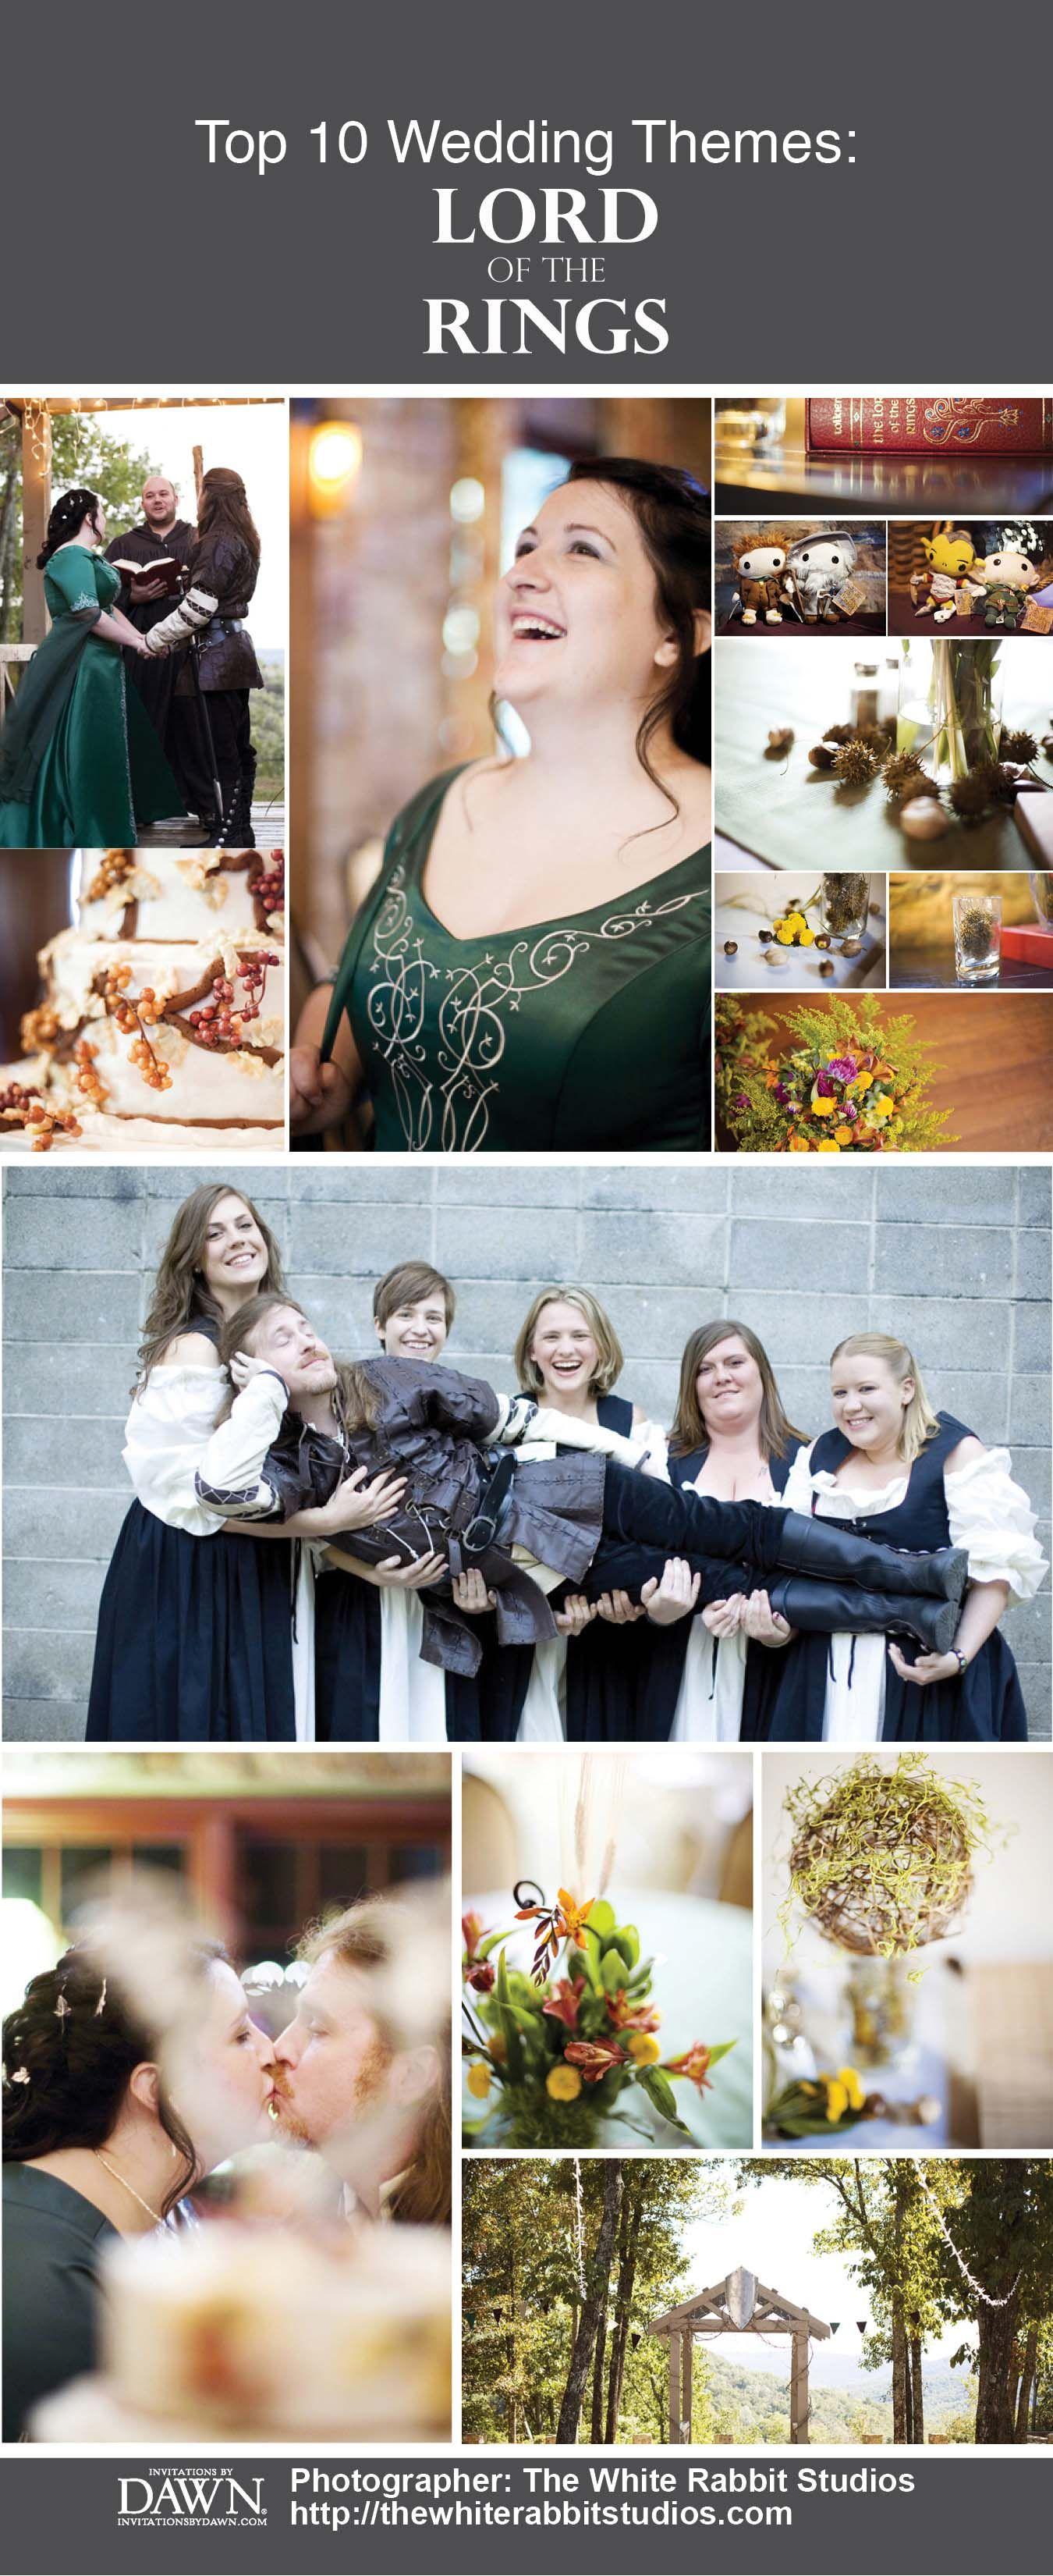 Top 10 Wedding Themes Wedding Ideas Pinterest Wedding Wedding